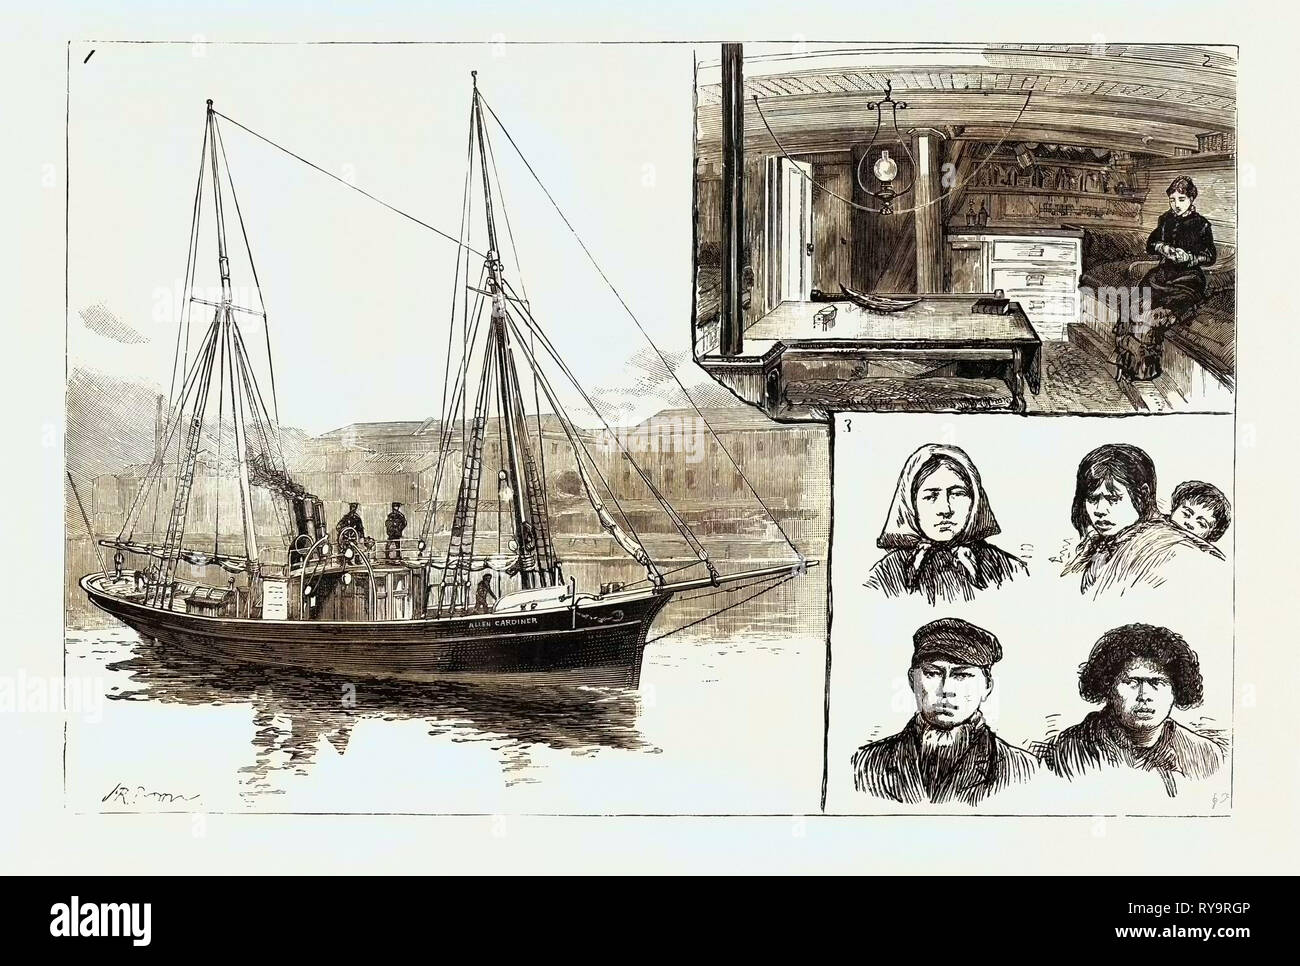 The Mission Ship of the South American Missionary Society, I. The Allen Gardiner 2. The Cabin 3. Natives of Tierra Del Fuego Civilised and Uncivilised, Engraving 1884 - Stock Image